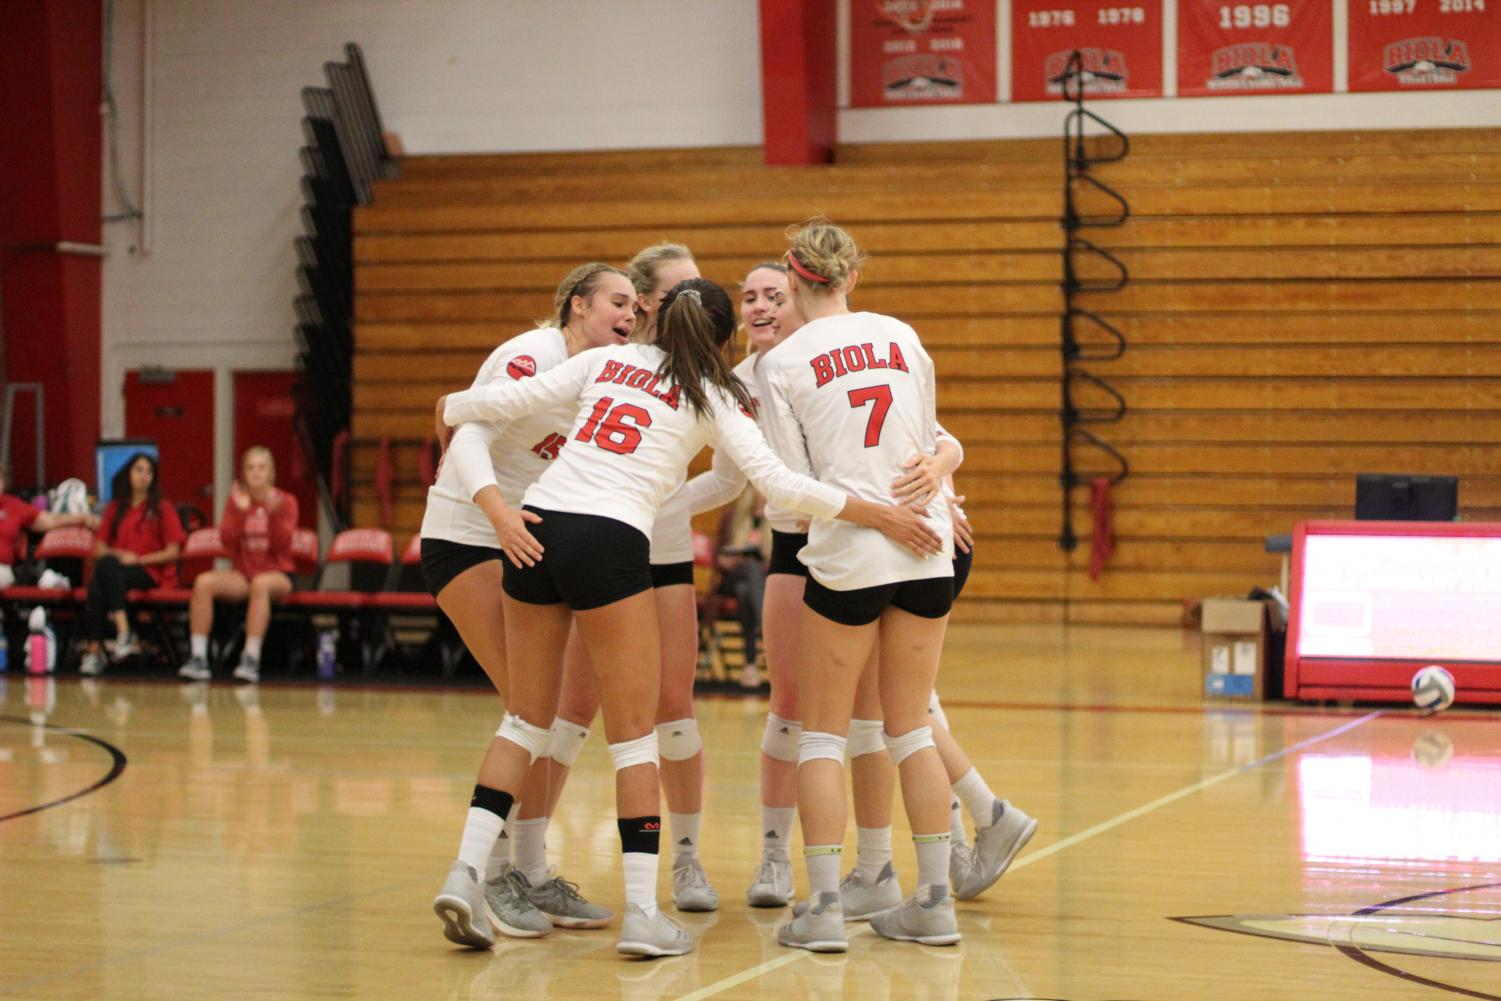 Biola volleyball players celebrate a point during their sweep of Chaminade University on Sept. 17, 2018. Photo by Aaron Zhang/THE CHIMES